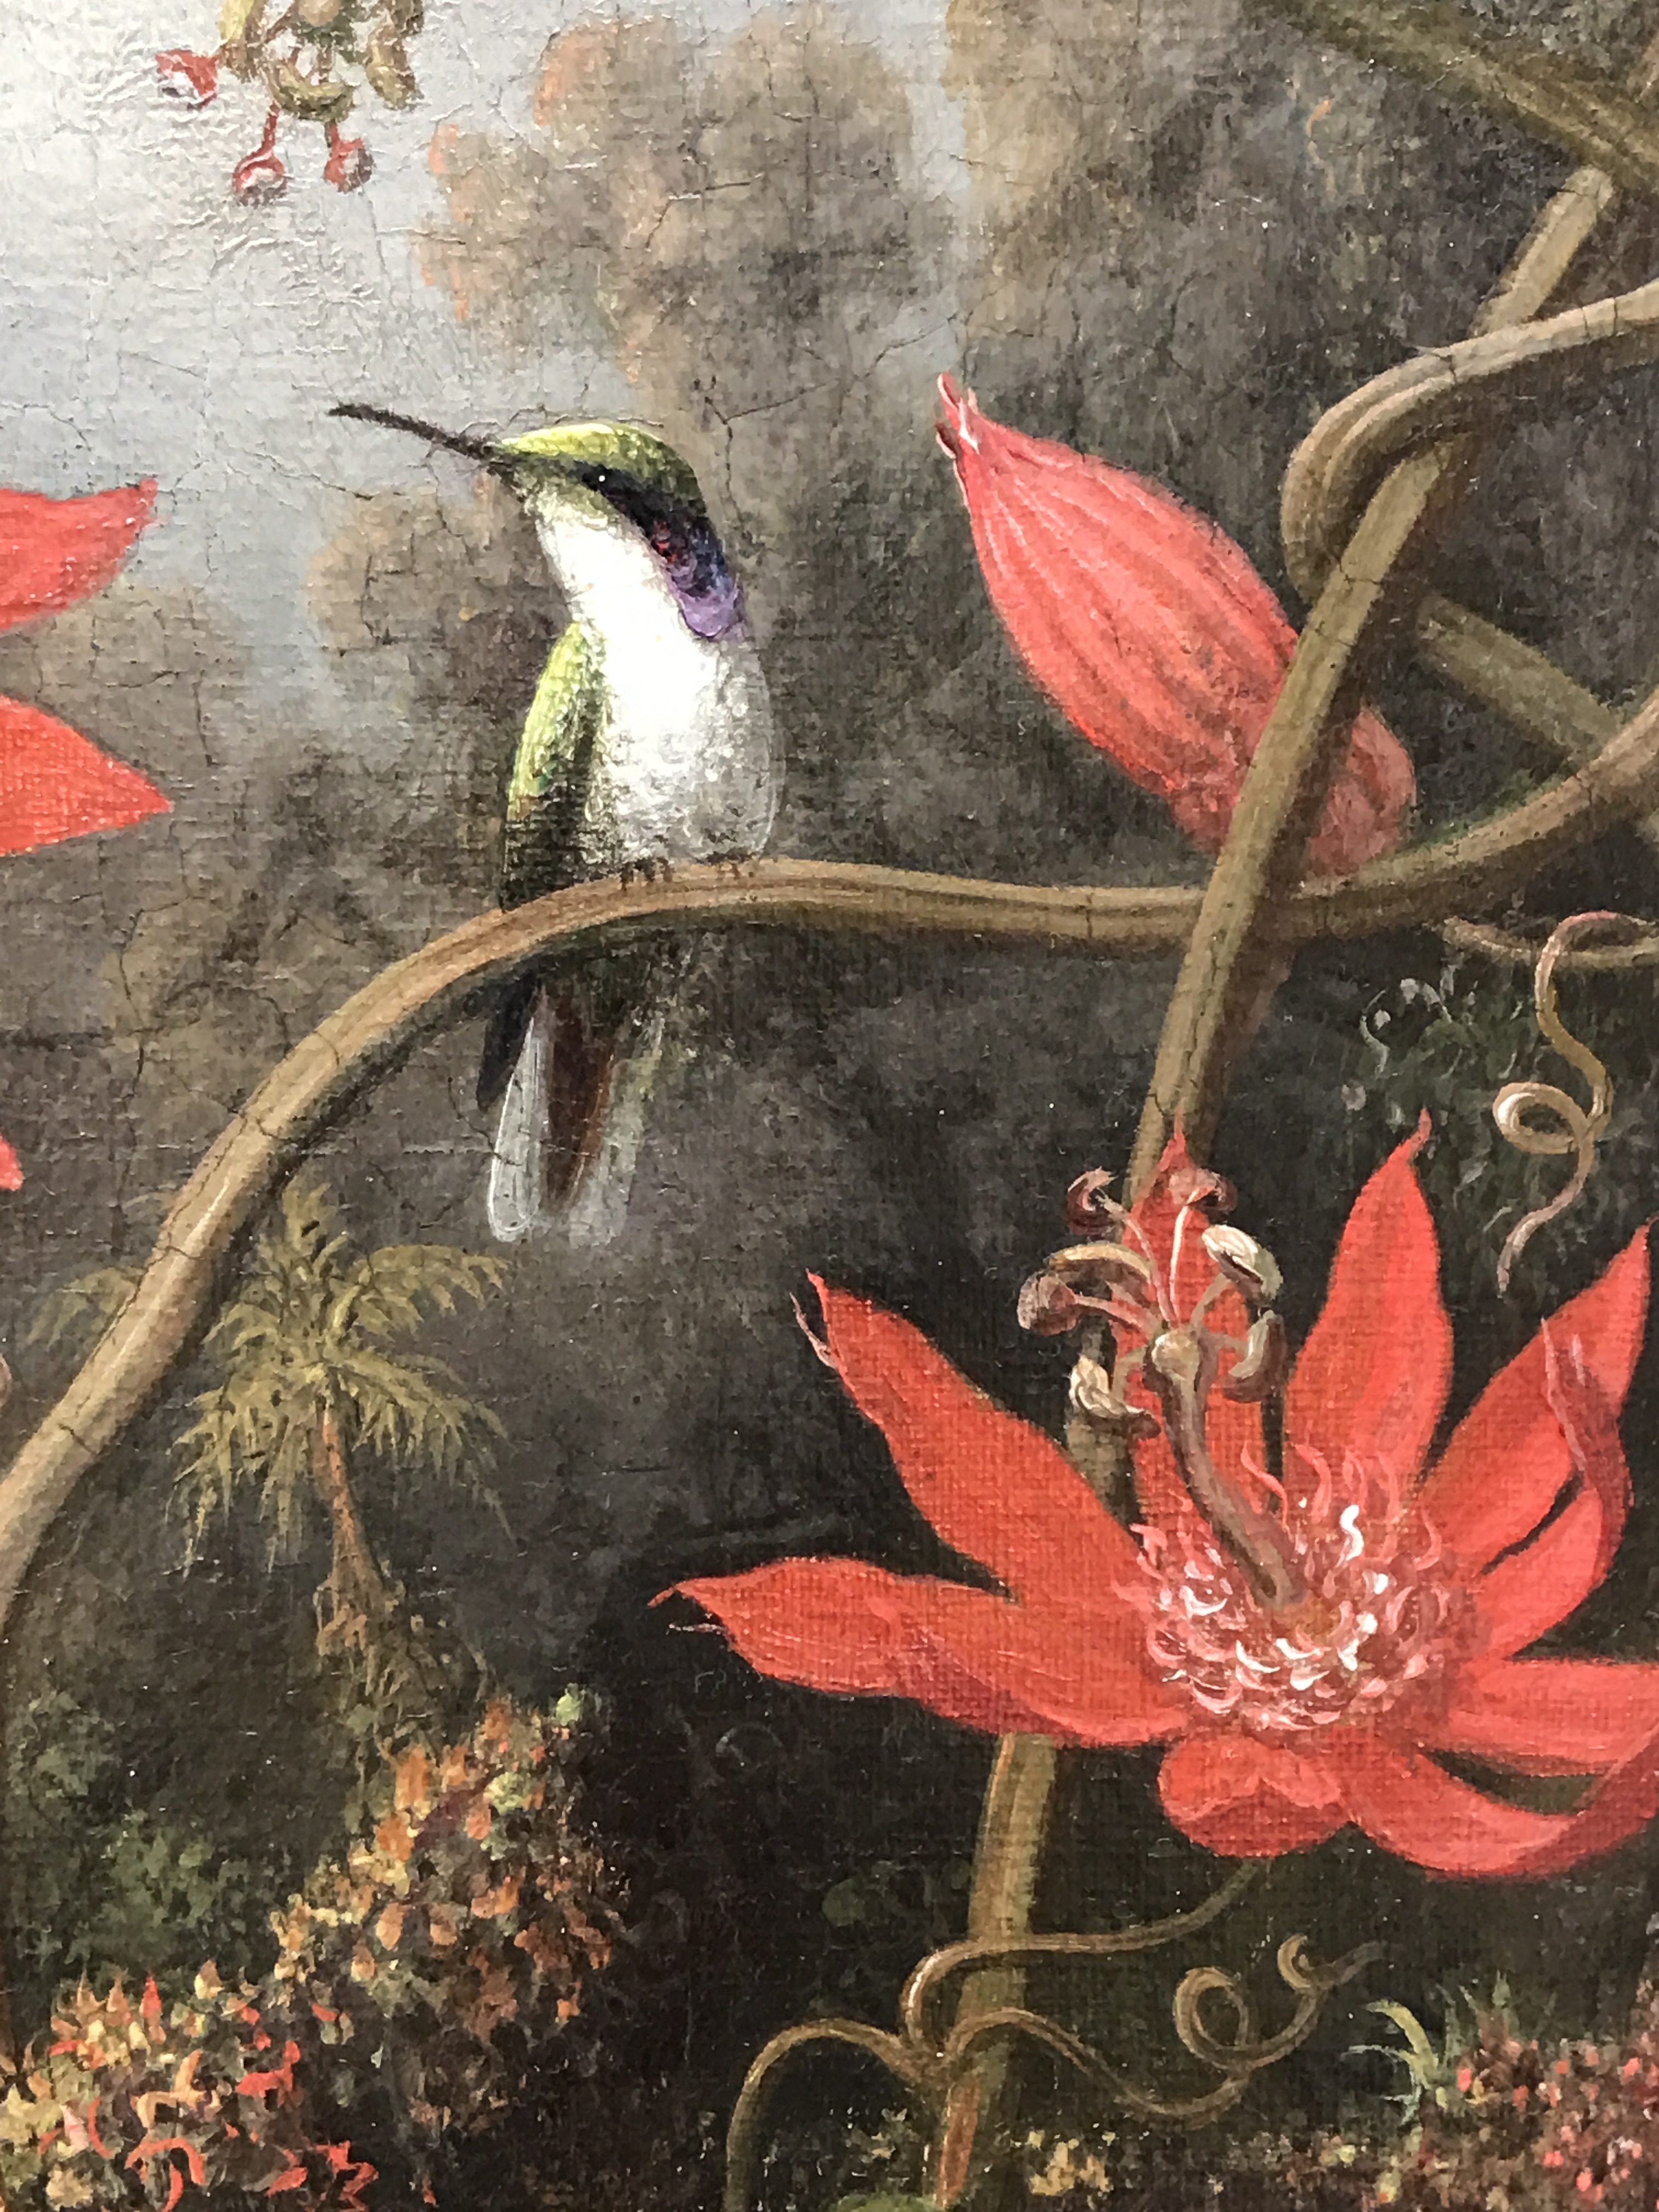 Hummingbird and Passionflowers, by Martin Johnson Heade, circa 1875, my photo